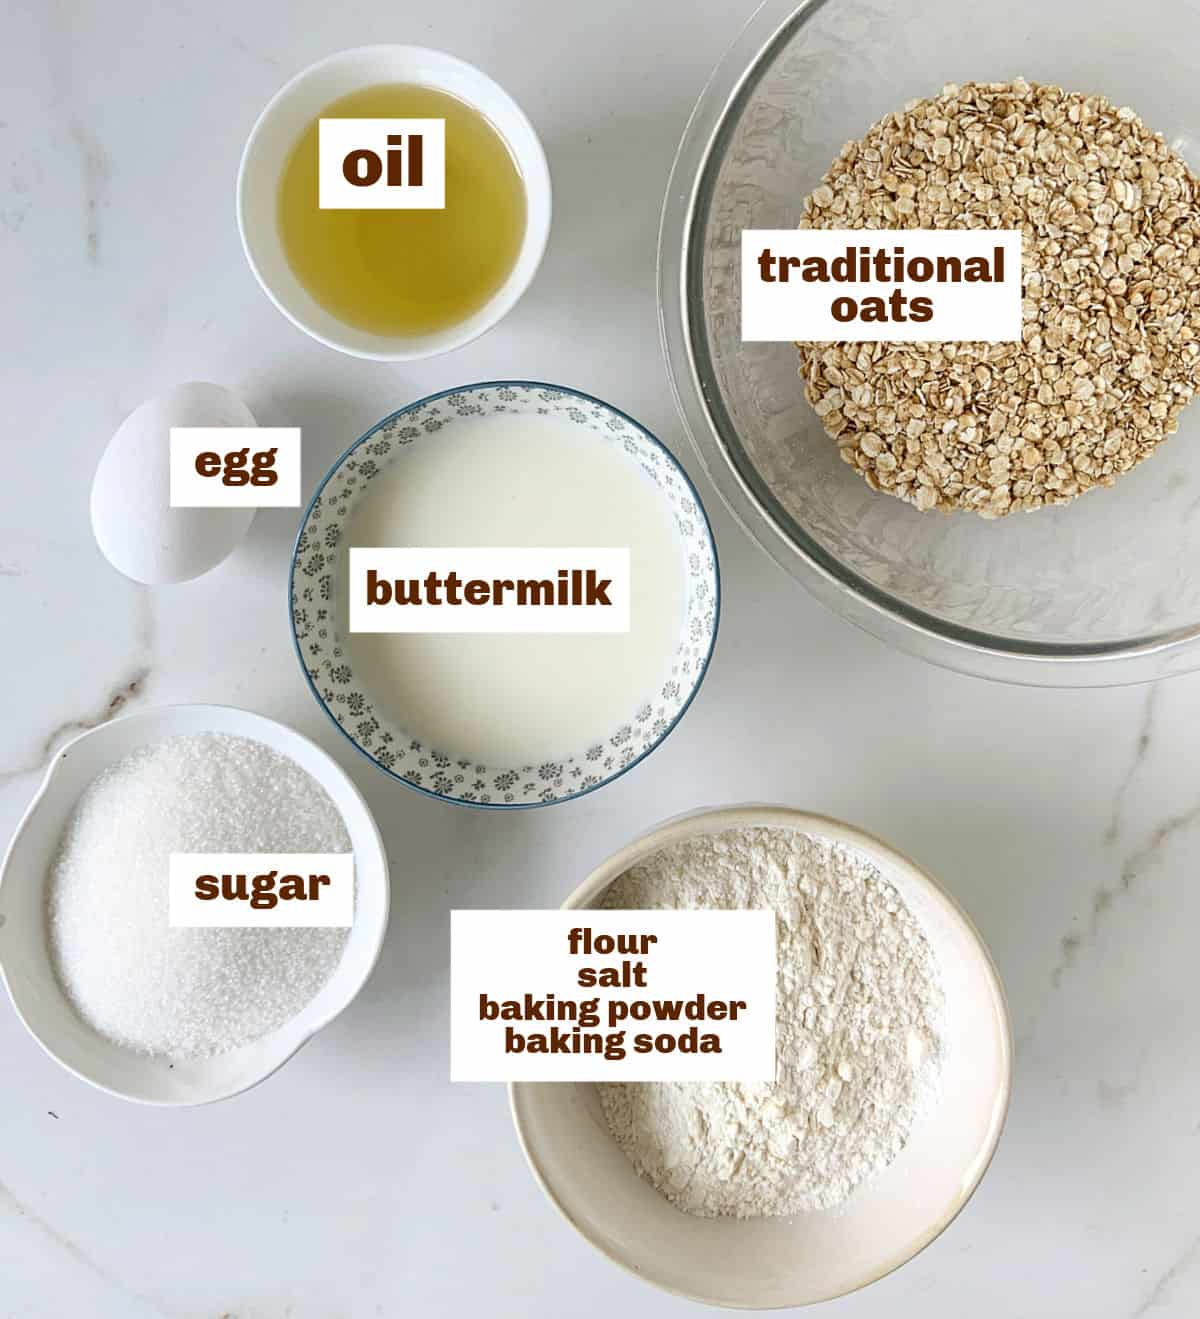 On a white marble surface several bowls with ingredients for buttermilk oatmeal muffins, including oil